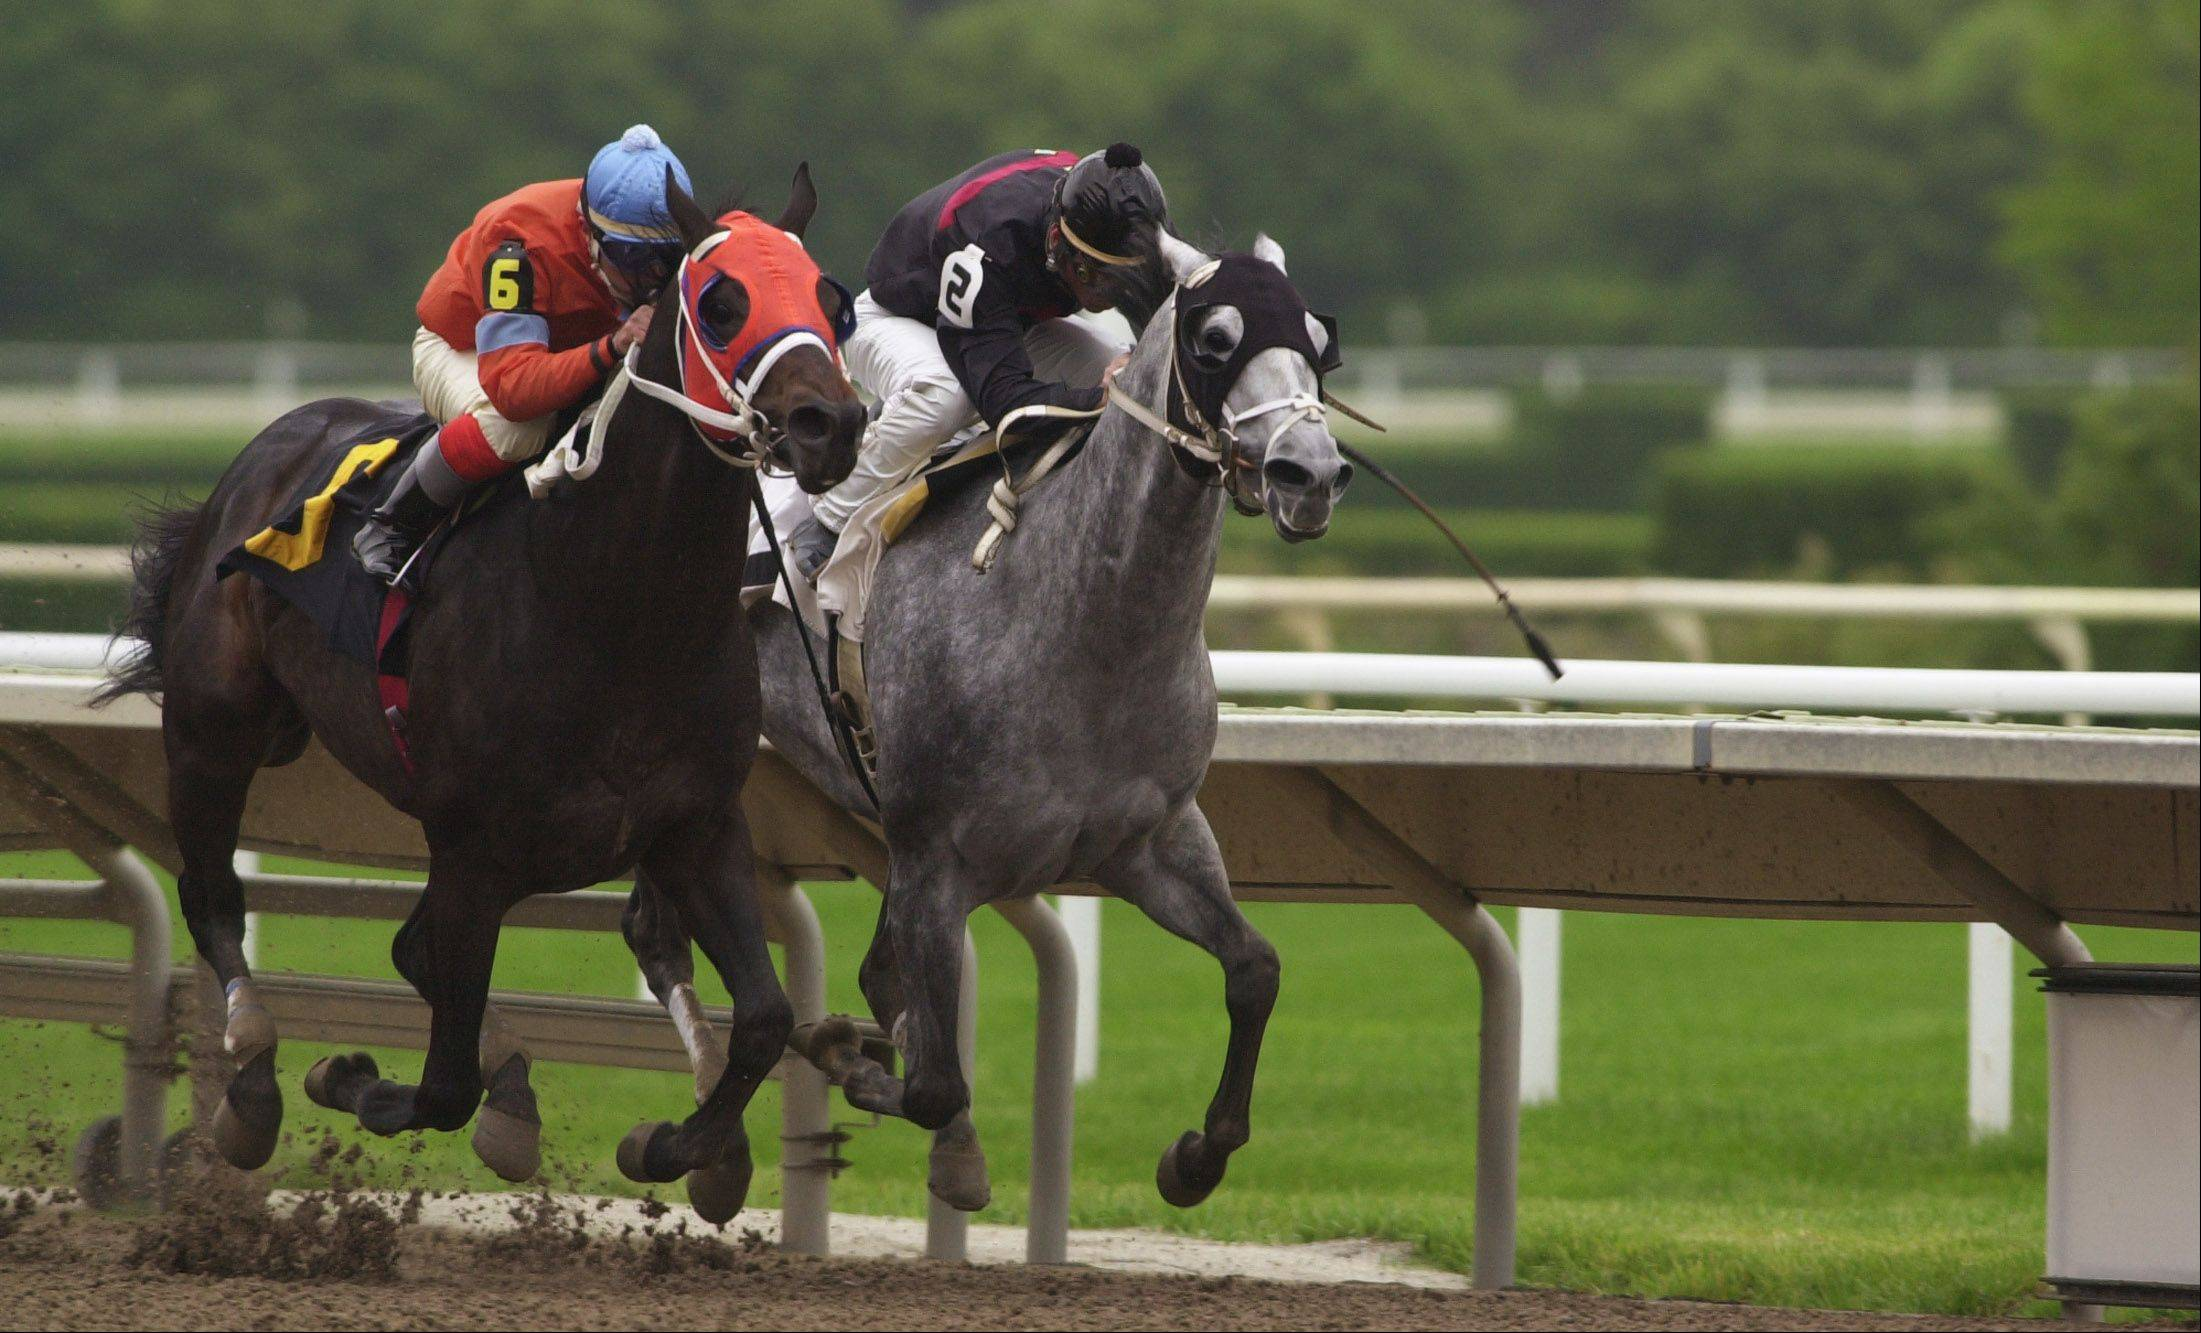 Horsemen at Arlington Park say they should get a cut of the track's Internet gambling income, should it be approved.